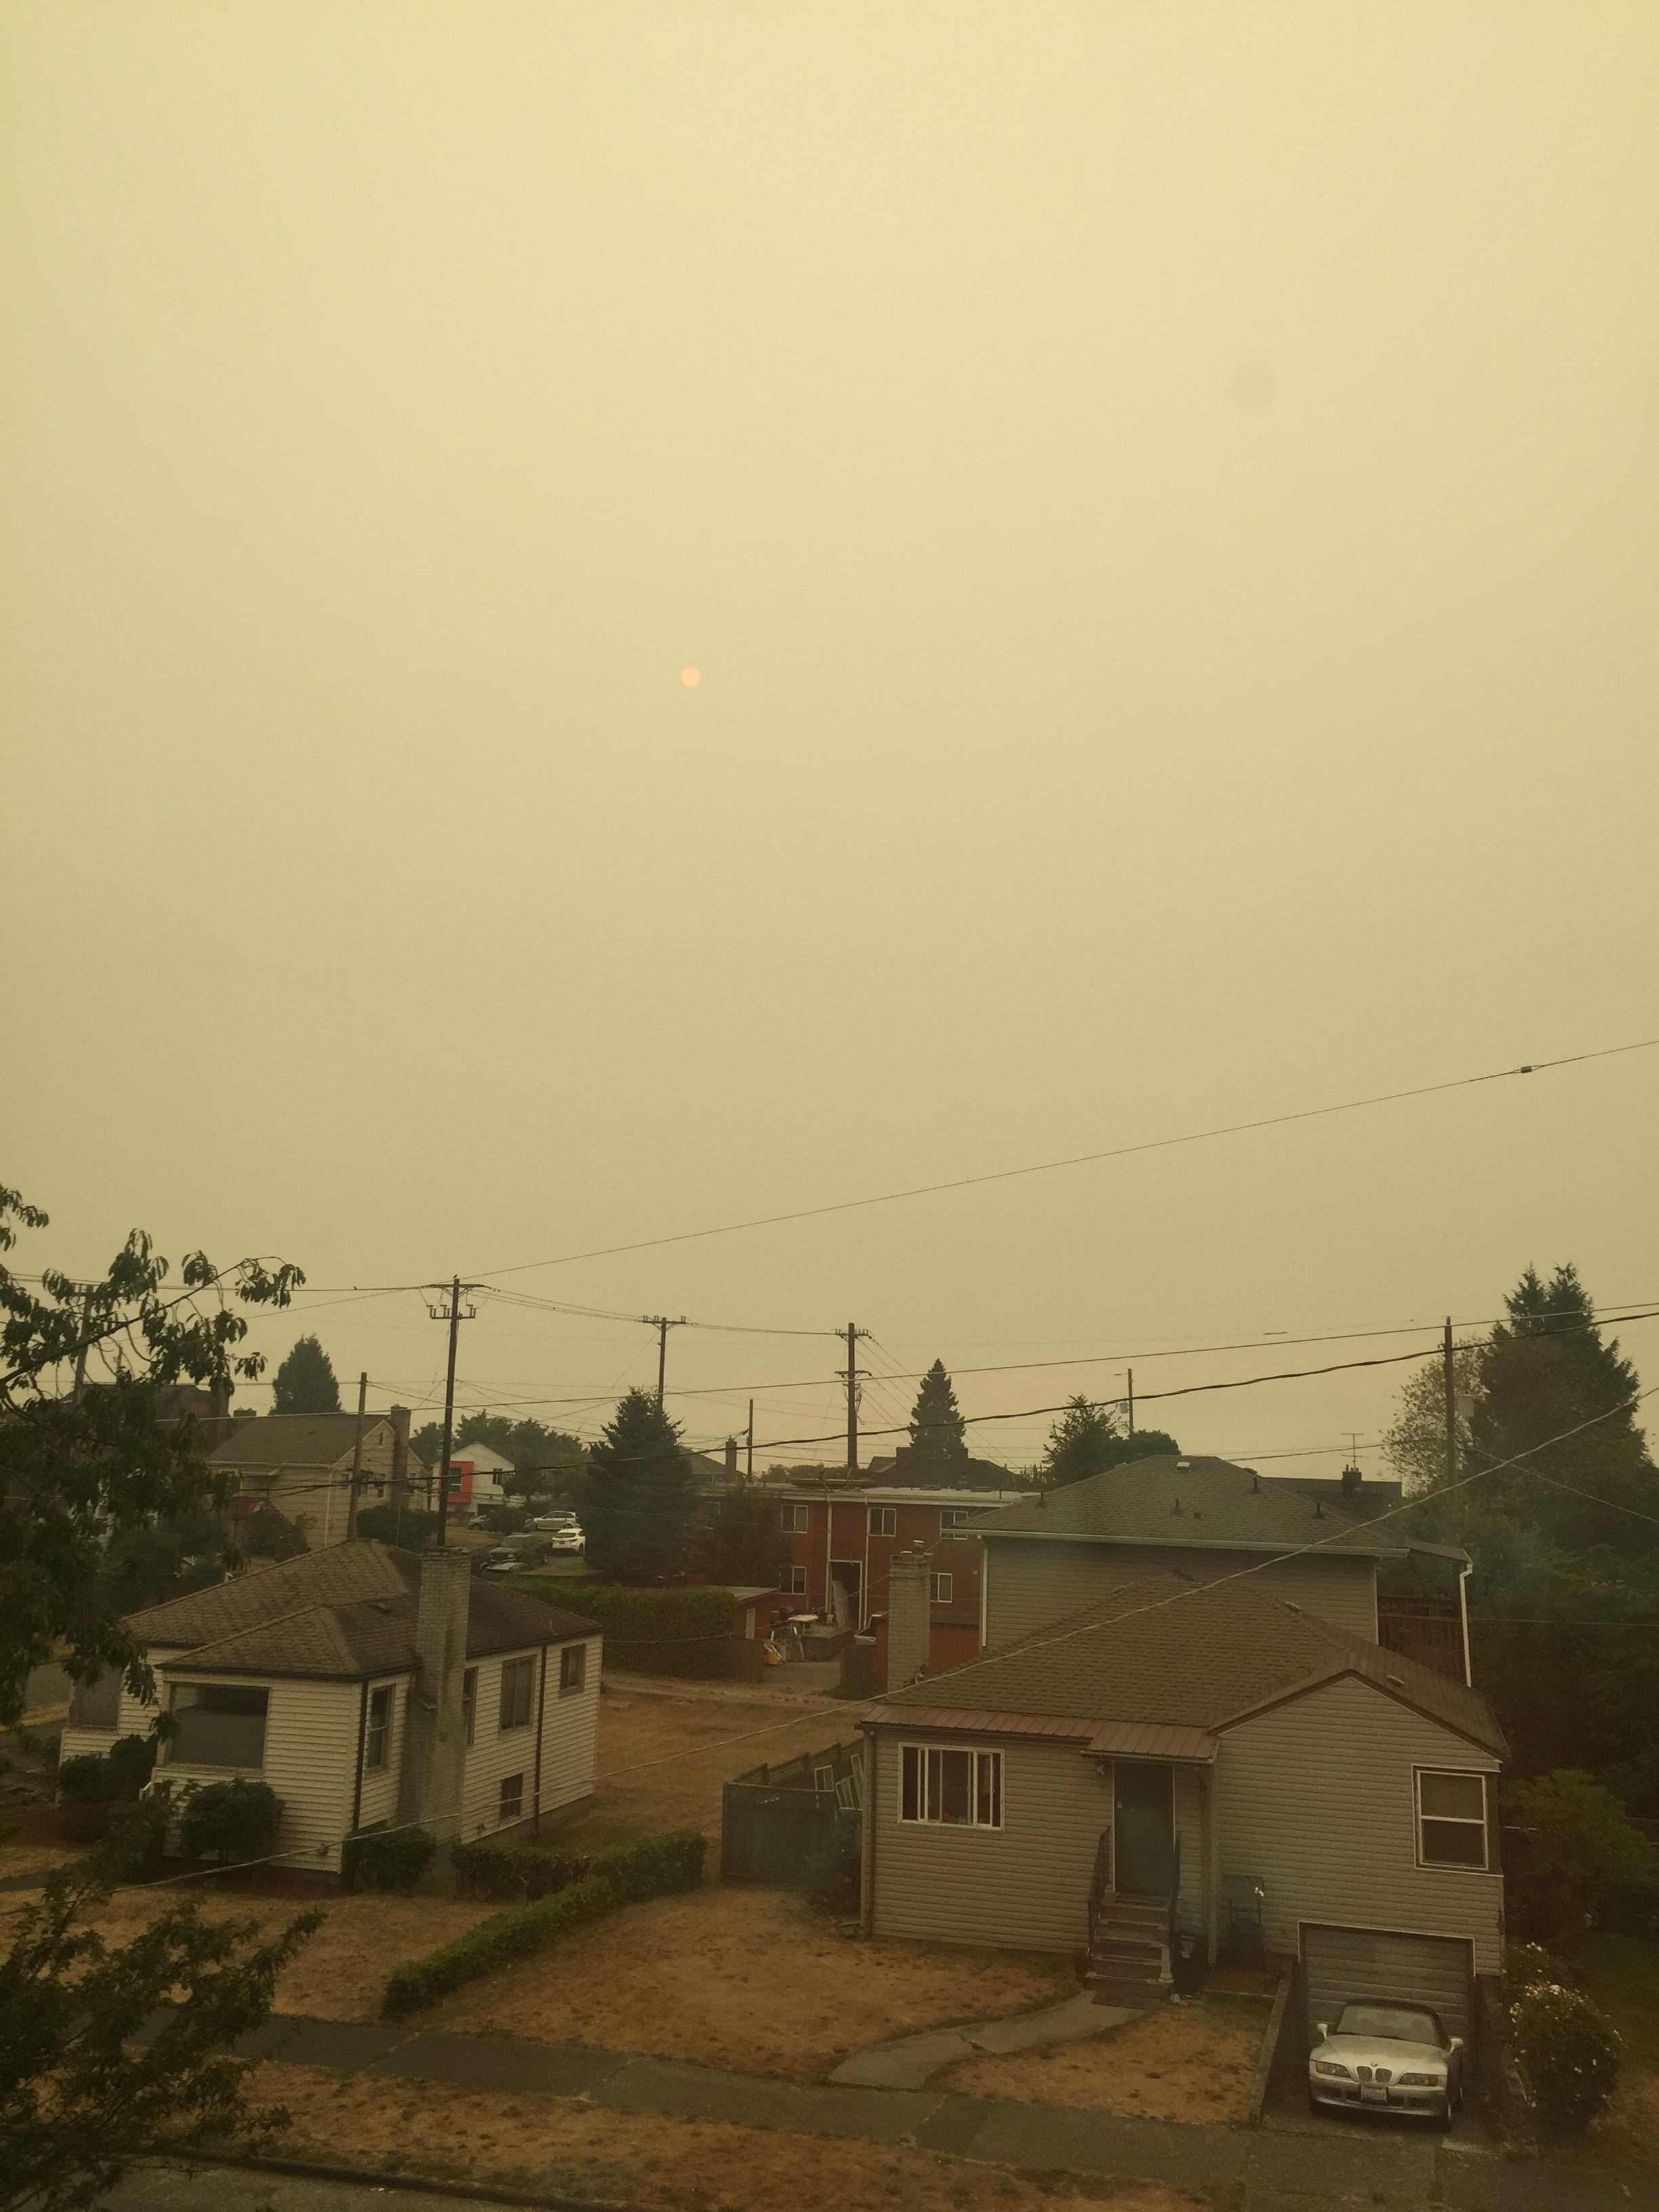 Smoke filled sky pollution air quality from wildfires burning Washington state